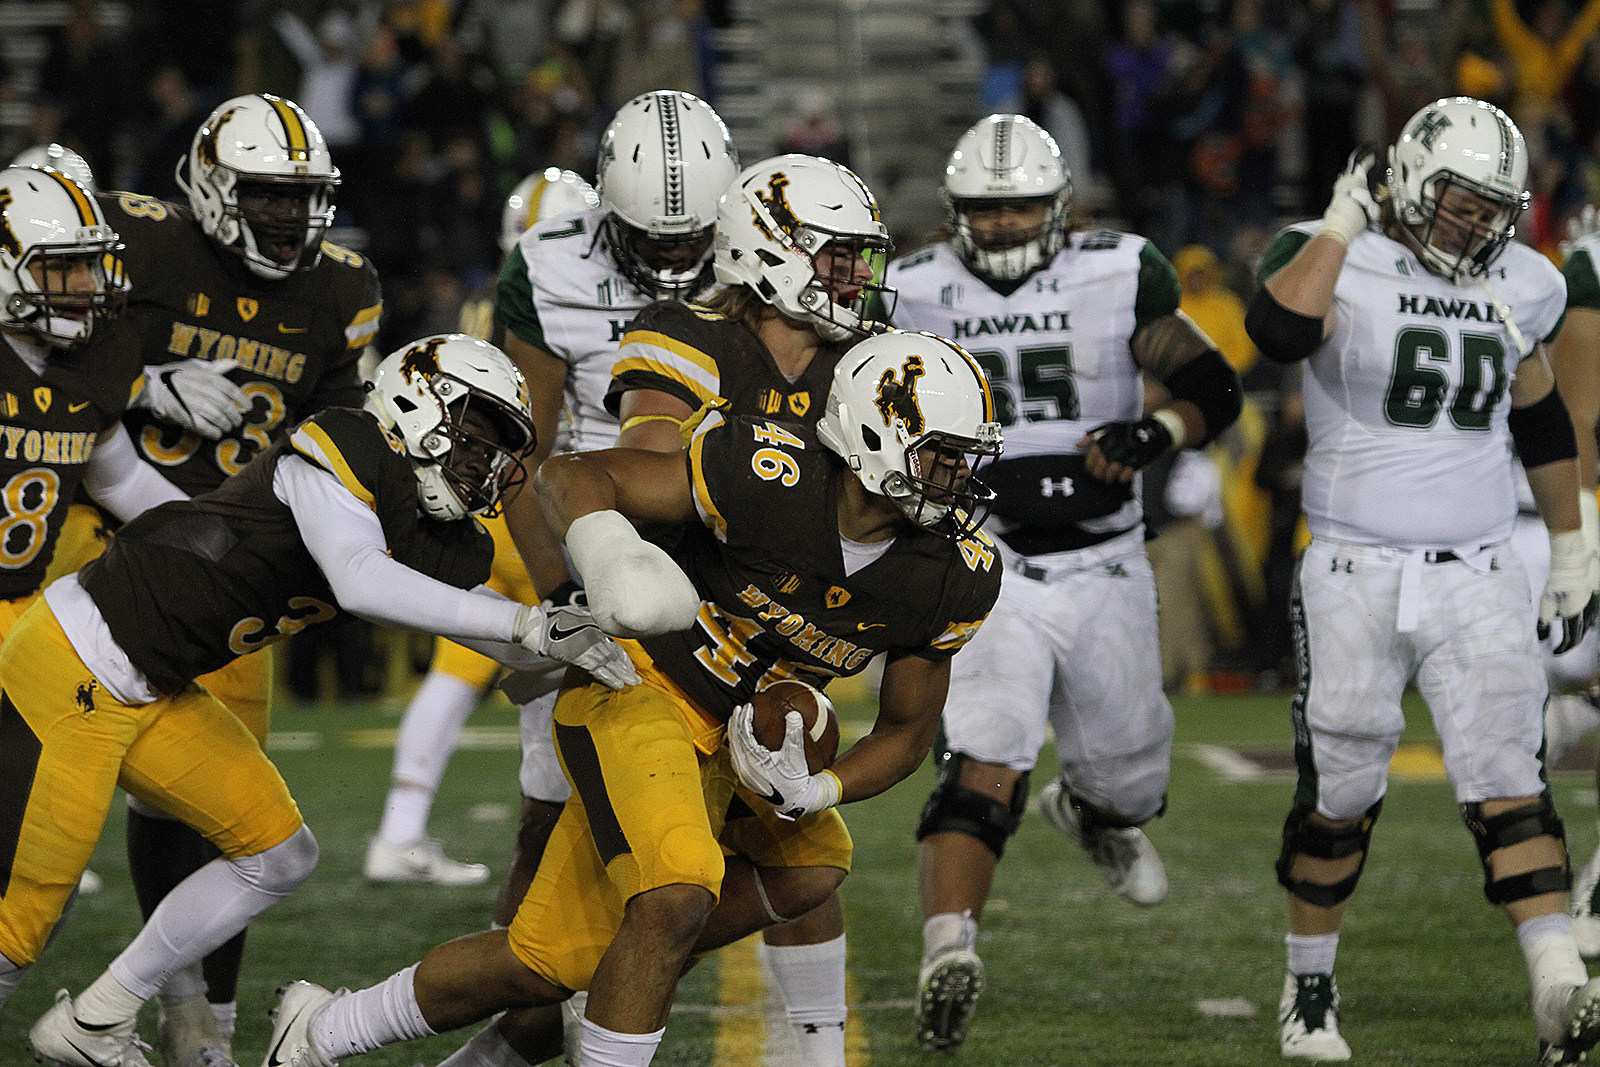 Wyoming Cowboys,Caash Maluia, UW, Wyo, UWYO, Football, Hawaii, 2017